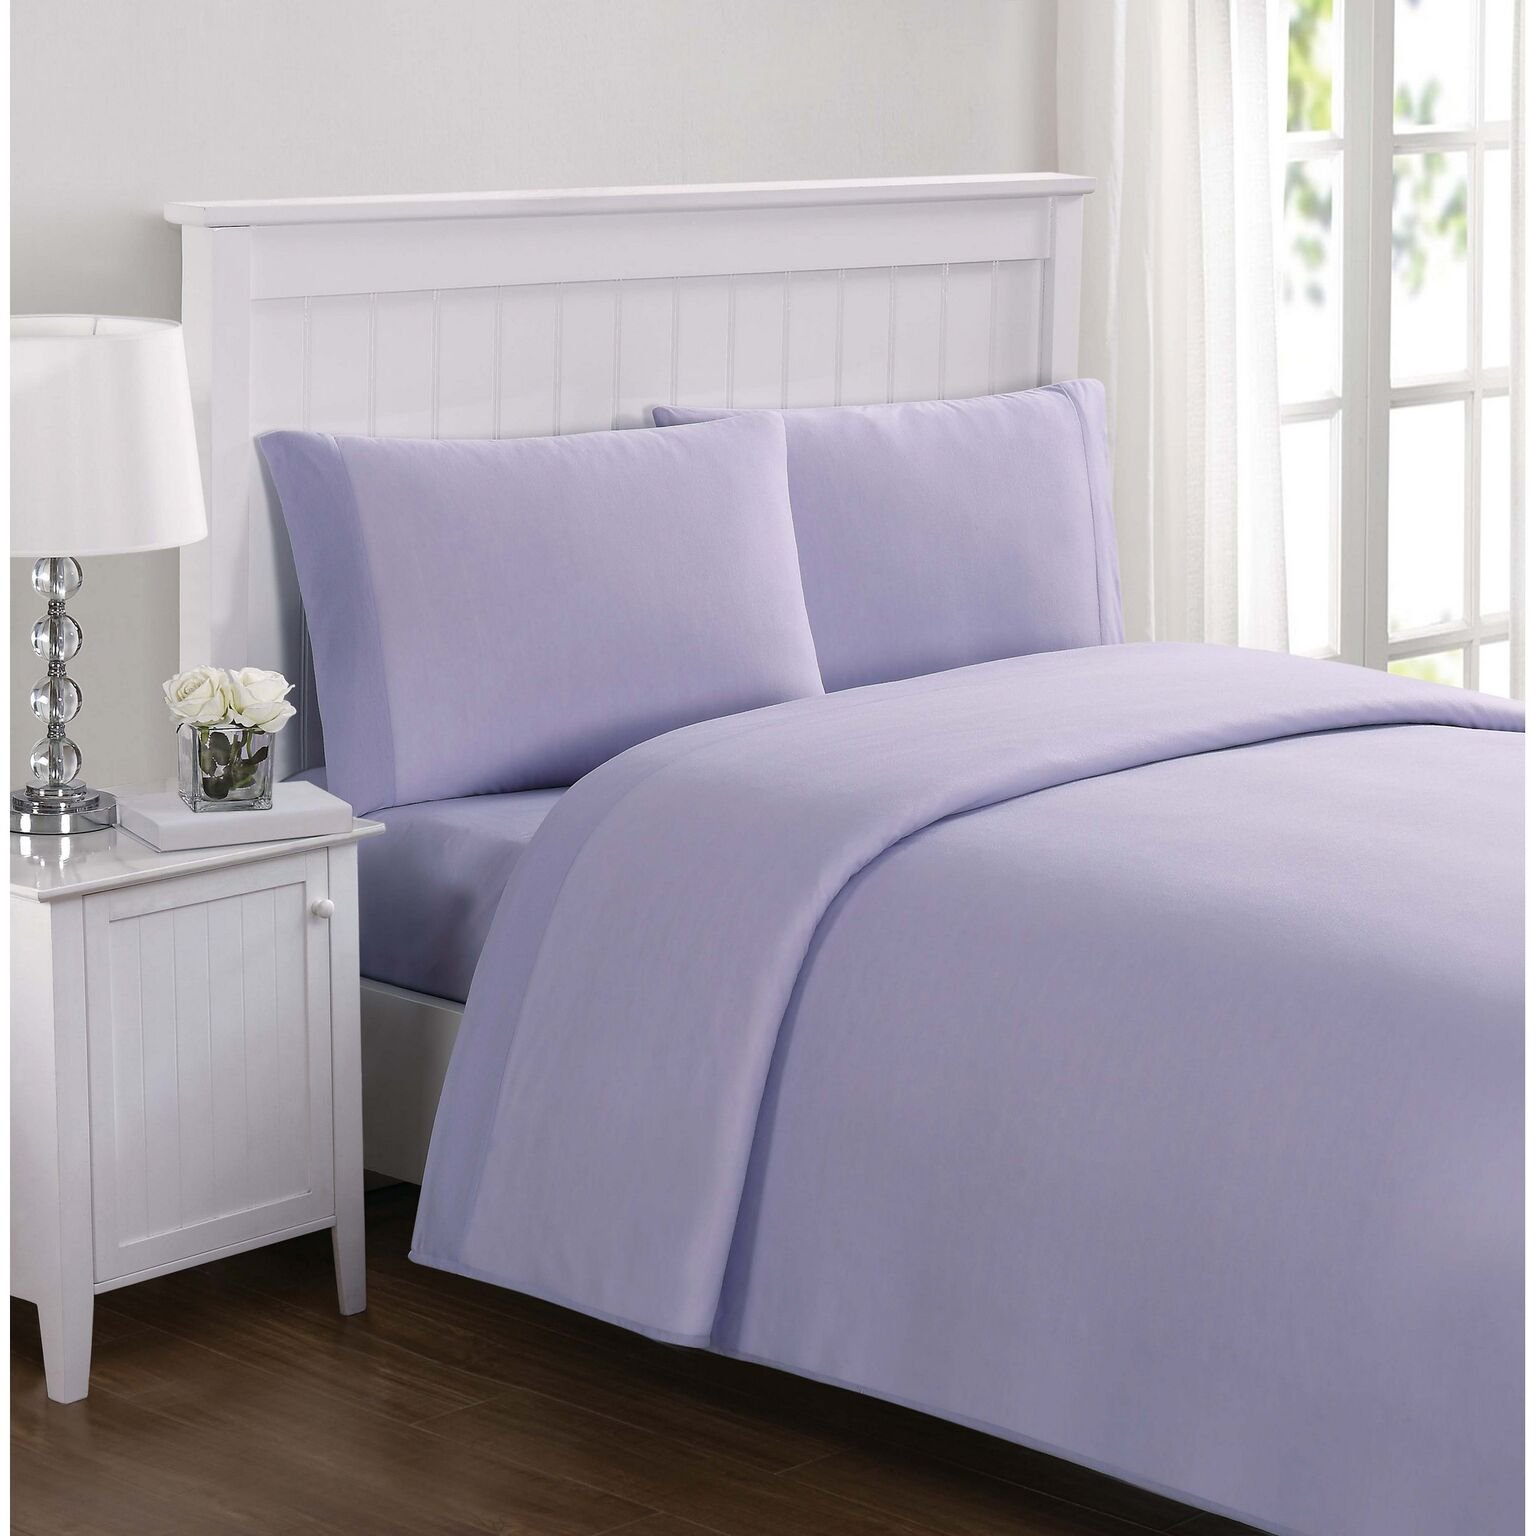 Truly Soft SS2400LAFU-4700 Sheet Set, Full, Lavender by Truly Soft Everyday